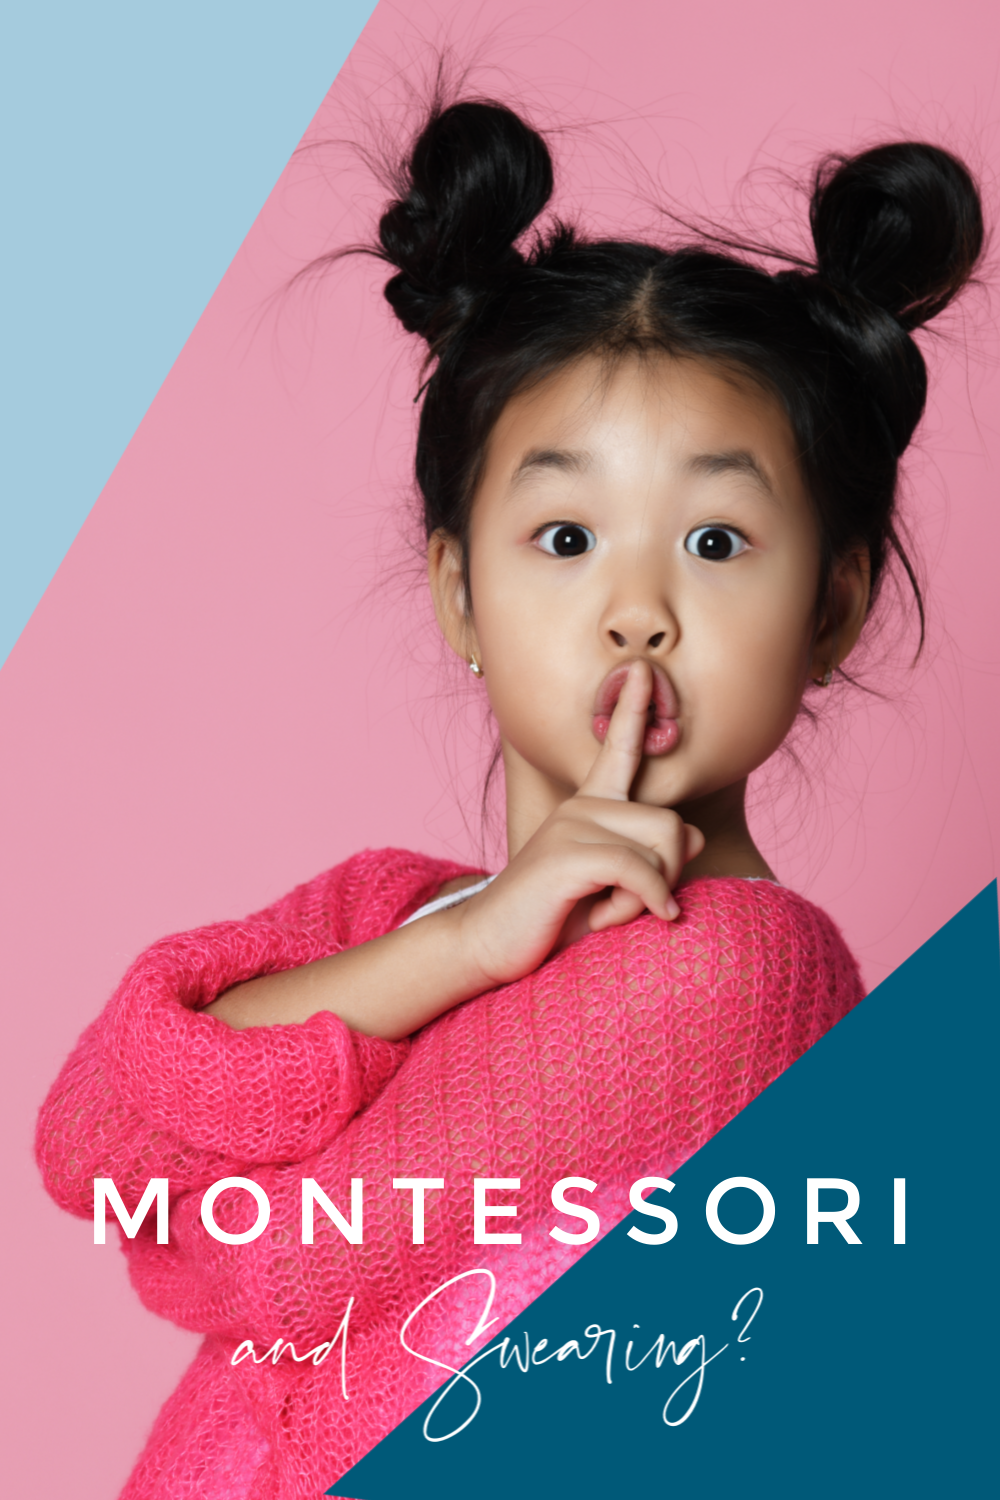 In this Montessori podcast episode we explore language development from a Montessori parenting perspective including a look at popular songs like the ABCs and what to do about swearing.